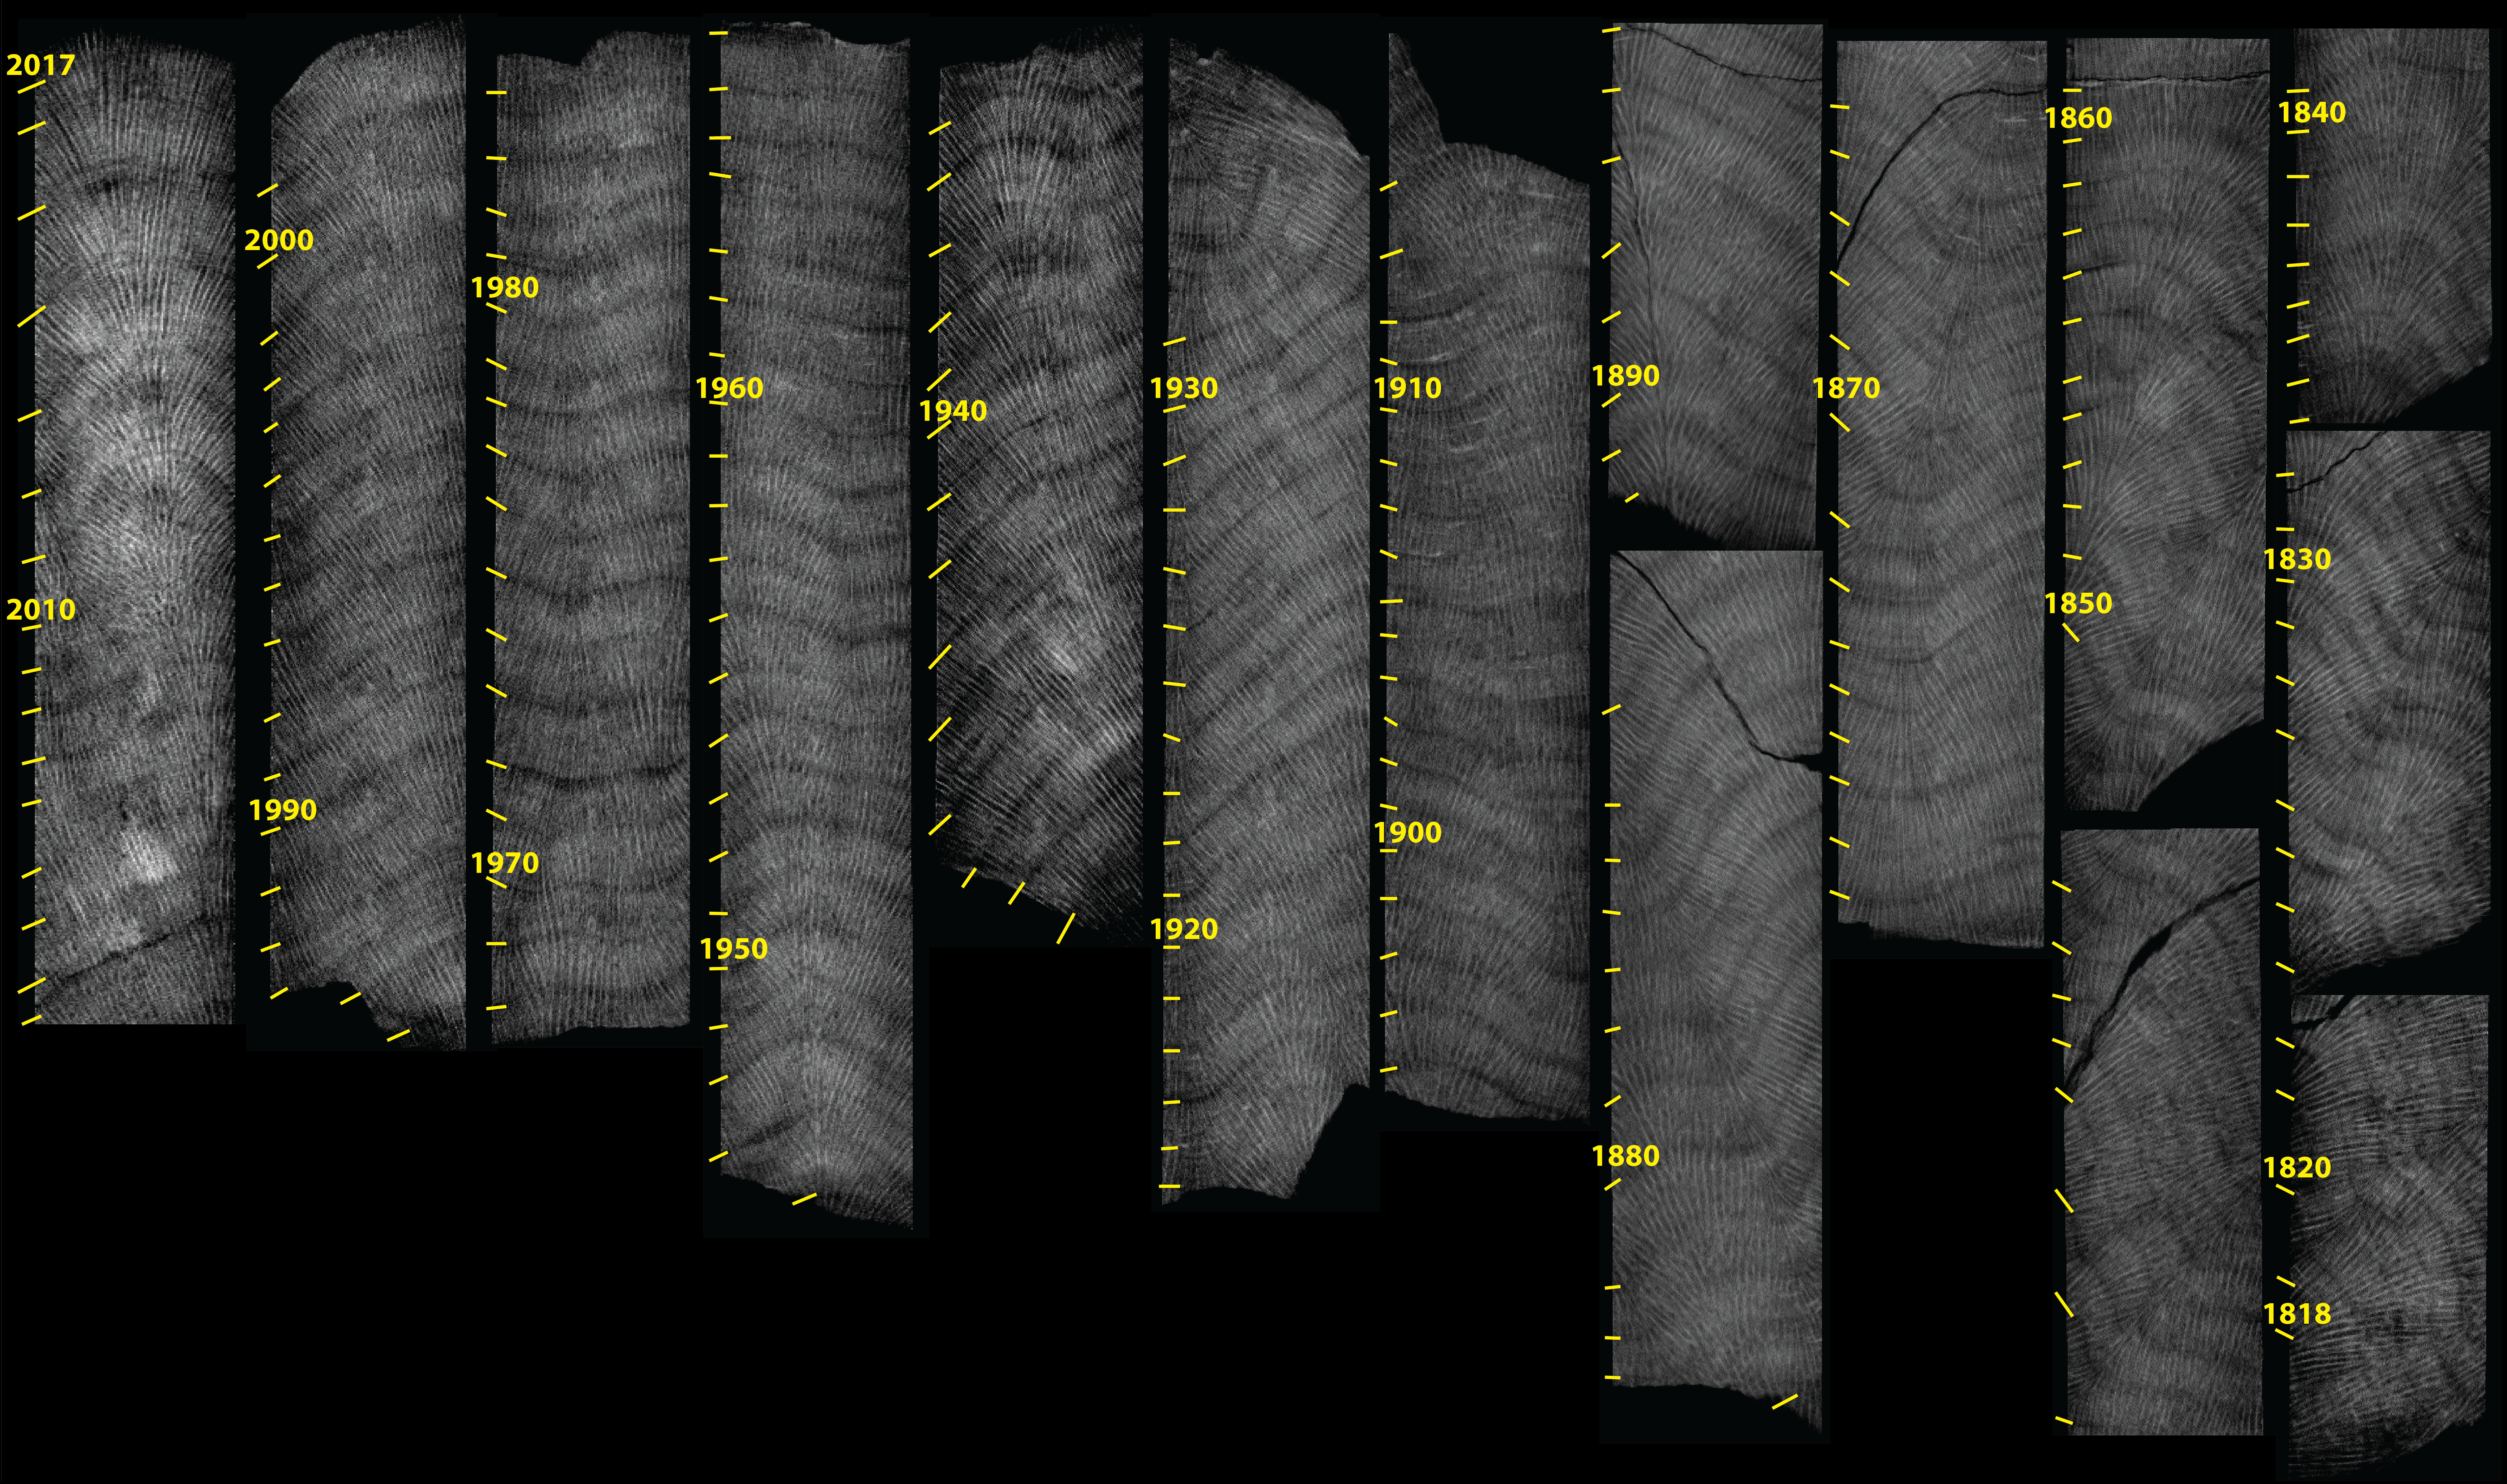 CT images showing the bands inside coral cores from 1815 - 2017